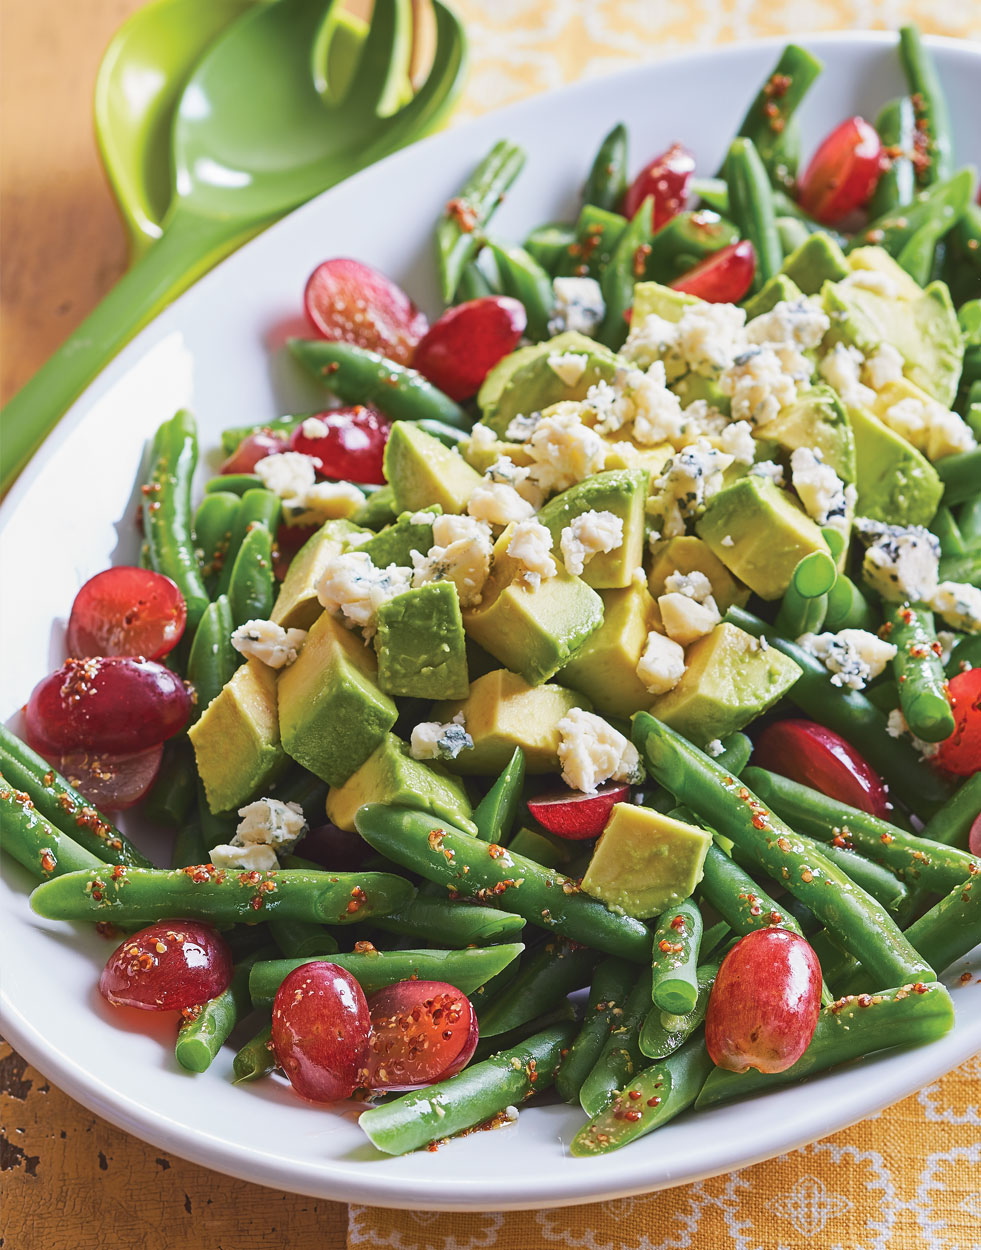 Cali-Green Bean Salad